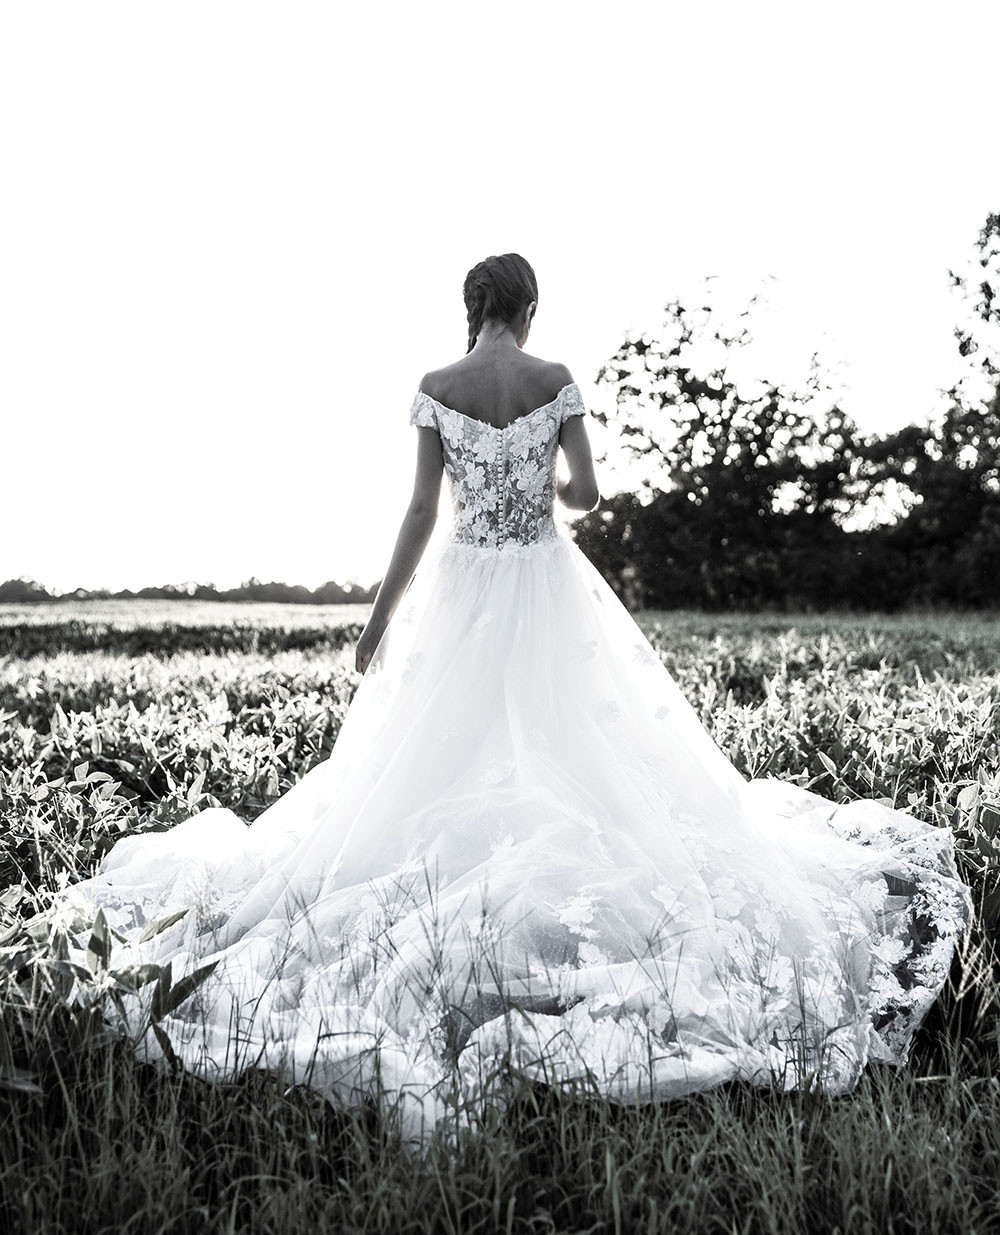 Floral lace ball gown from White Weddings worn by Mayada Jamila in a field of soy at The Barn at Lone Eagle Landing wedding venue